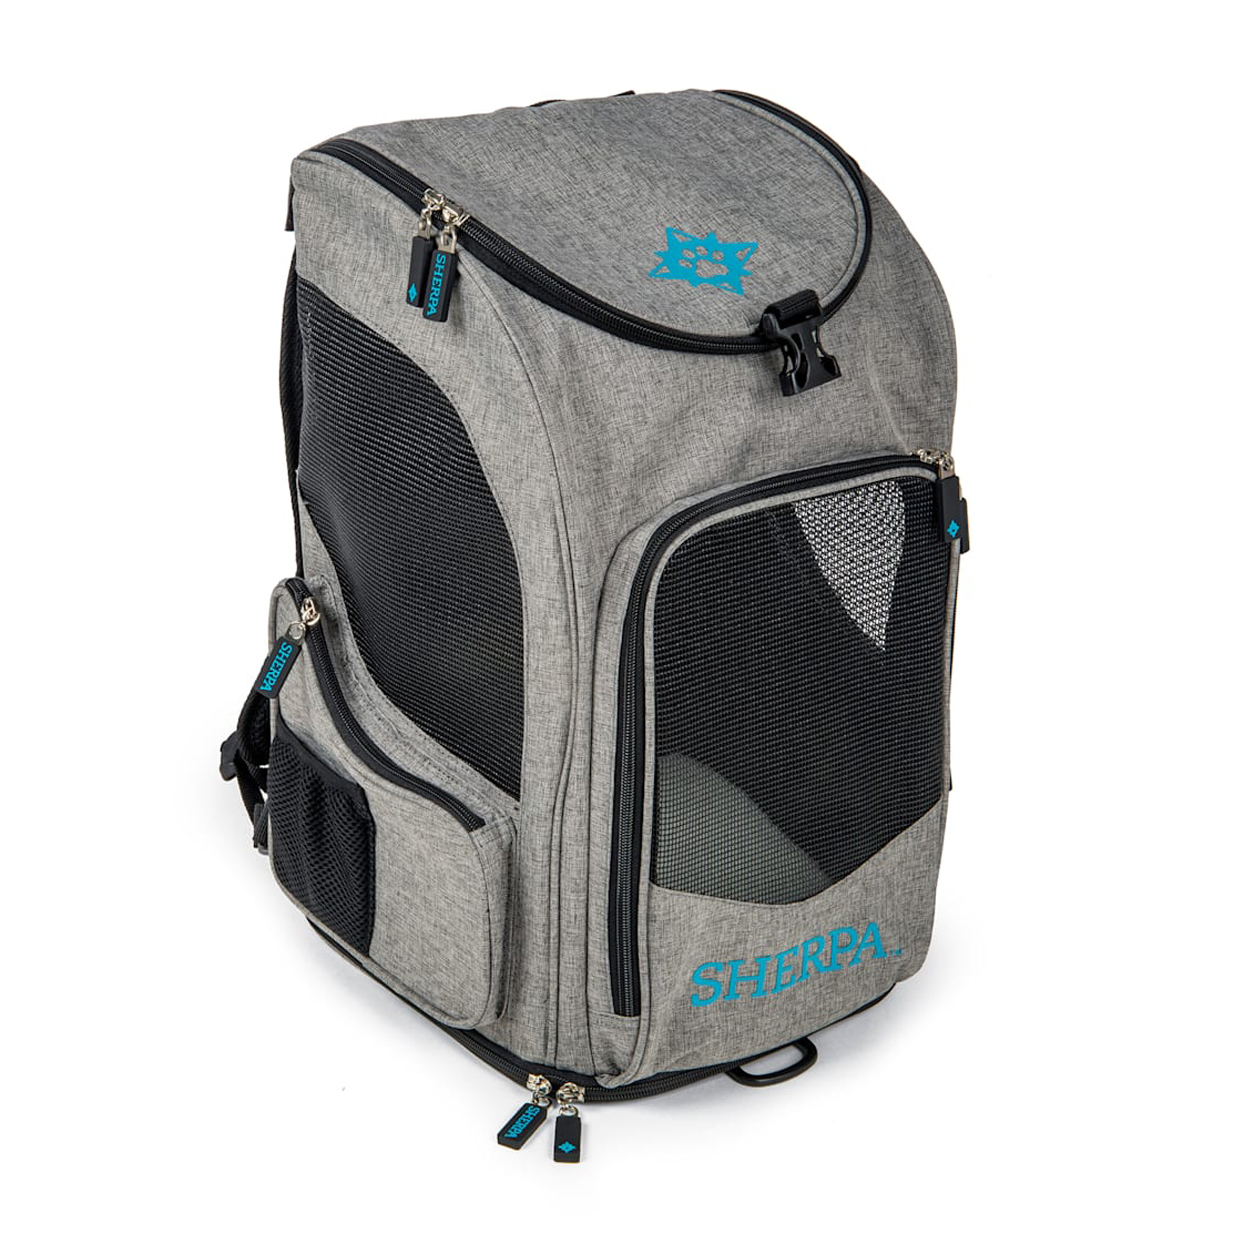 sherpa-2-in-1-pet-carrier-backpack